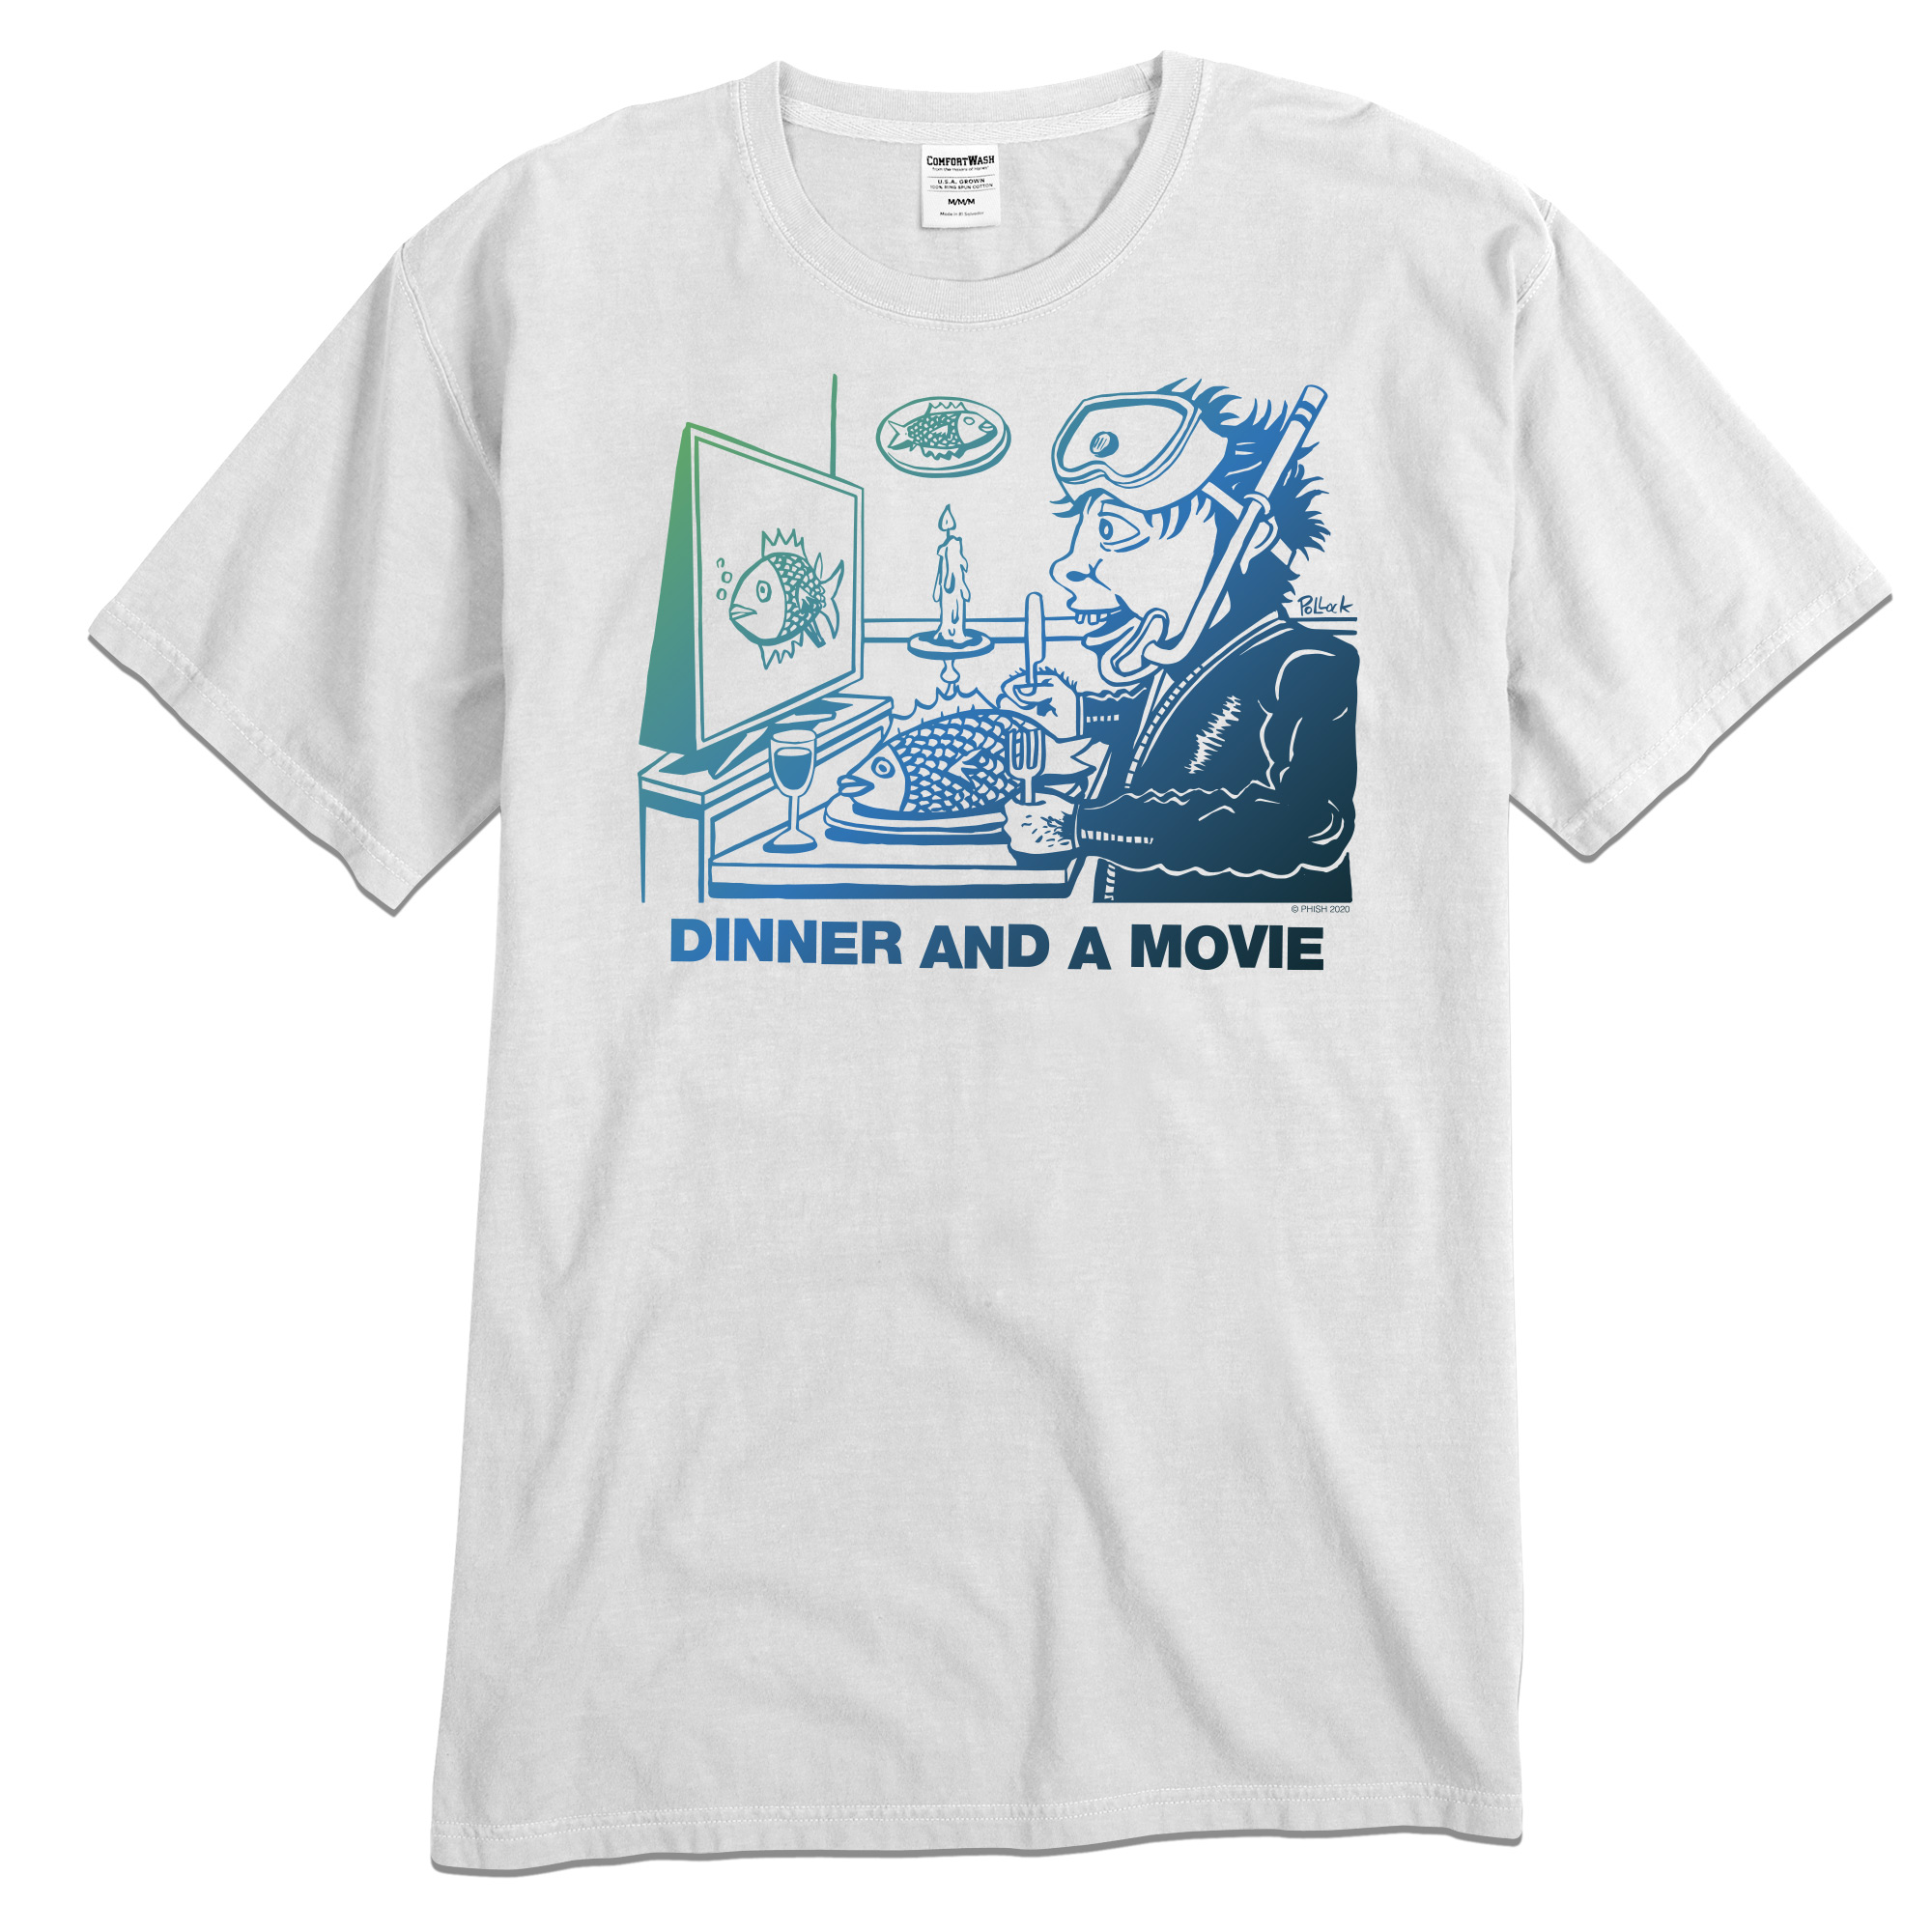 Dinner And A Movie Pollock Tee on White